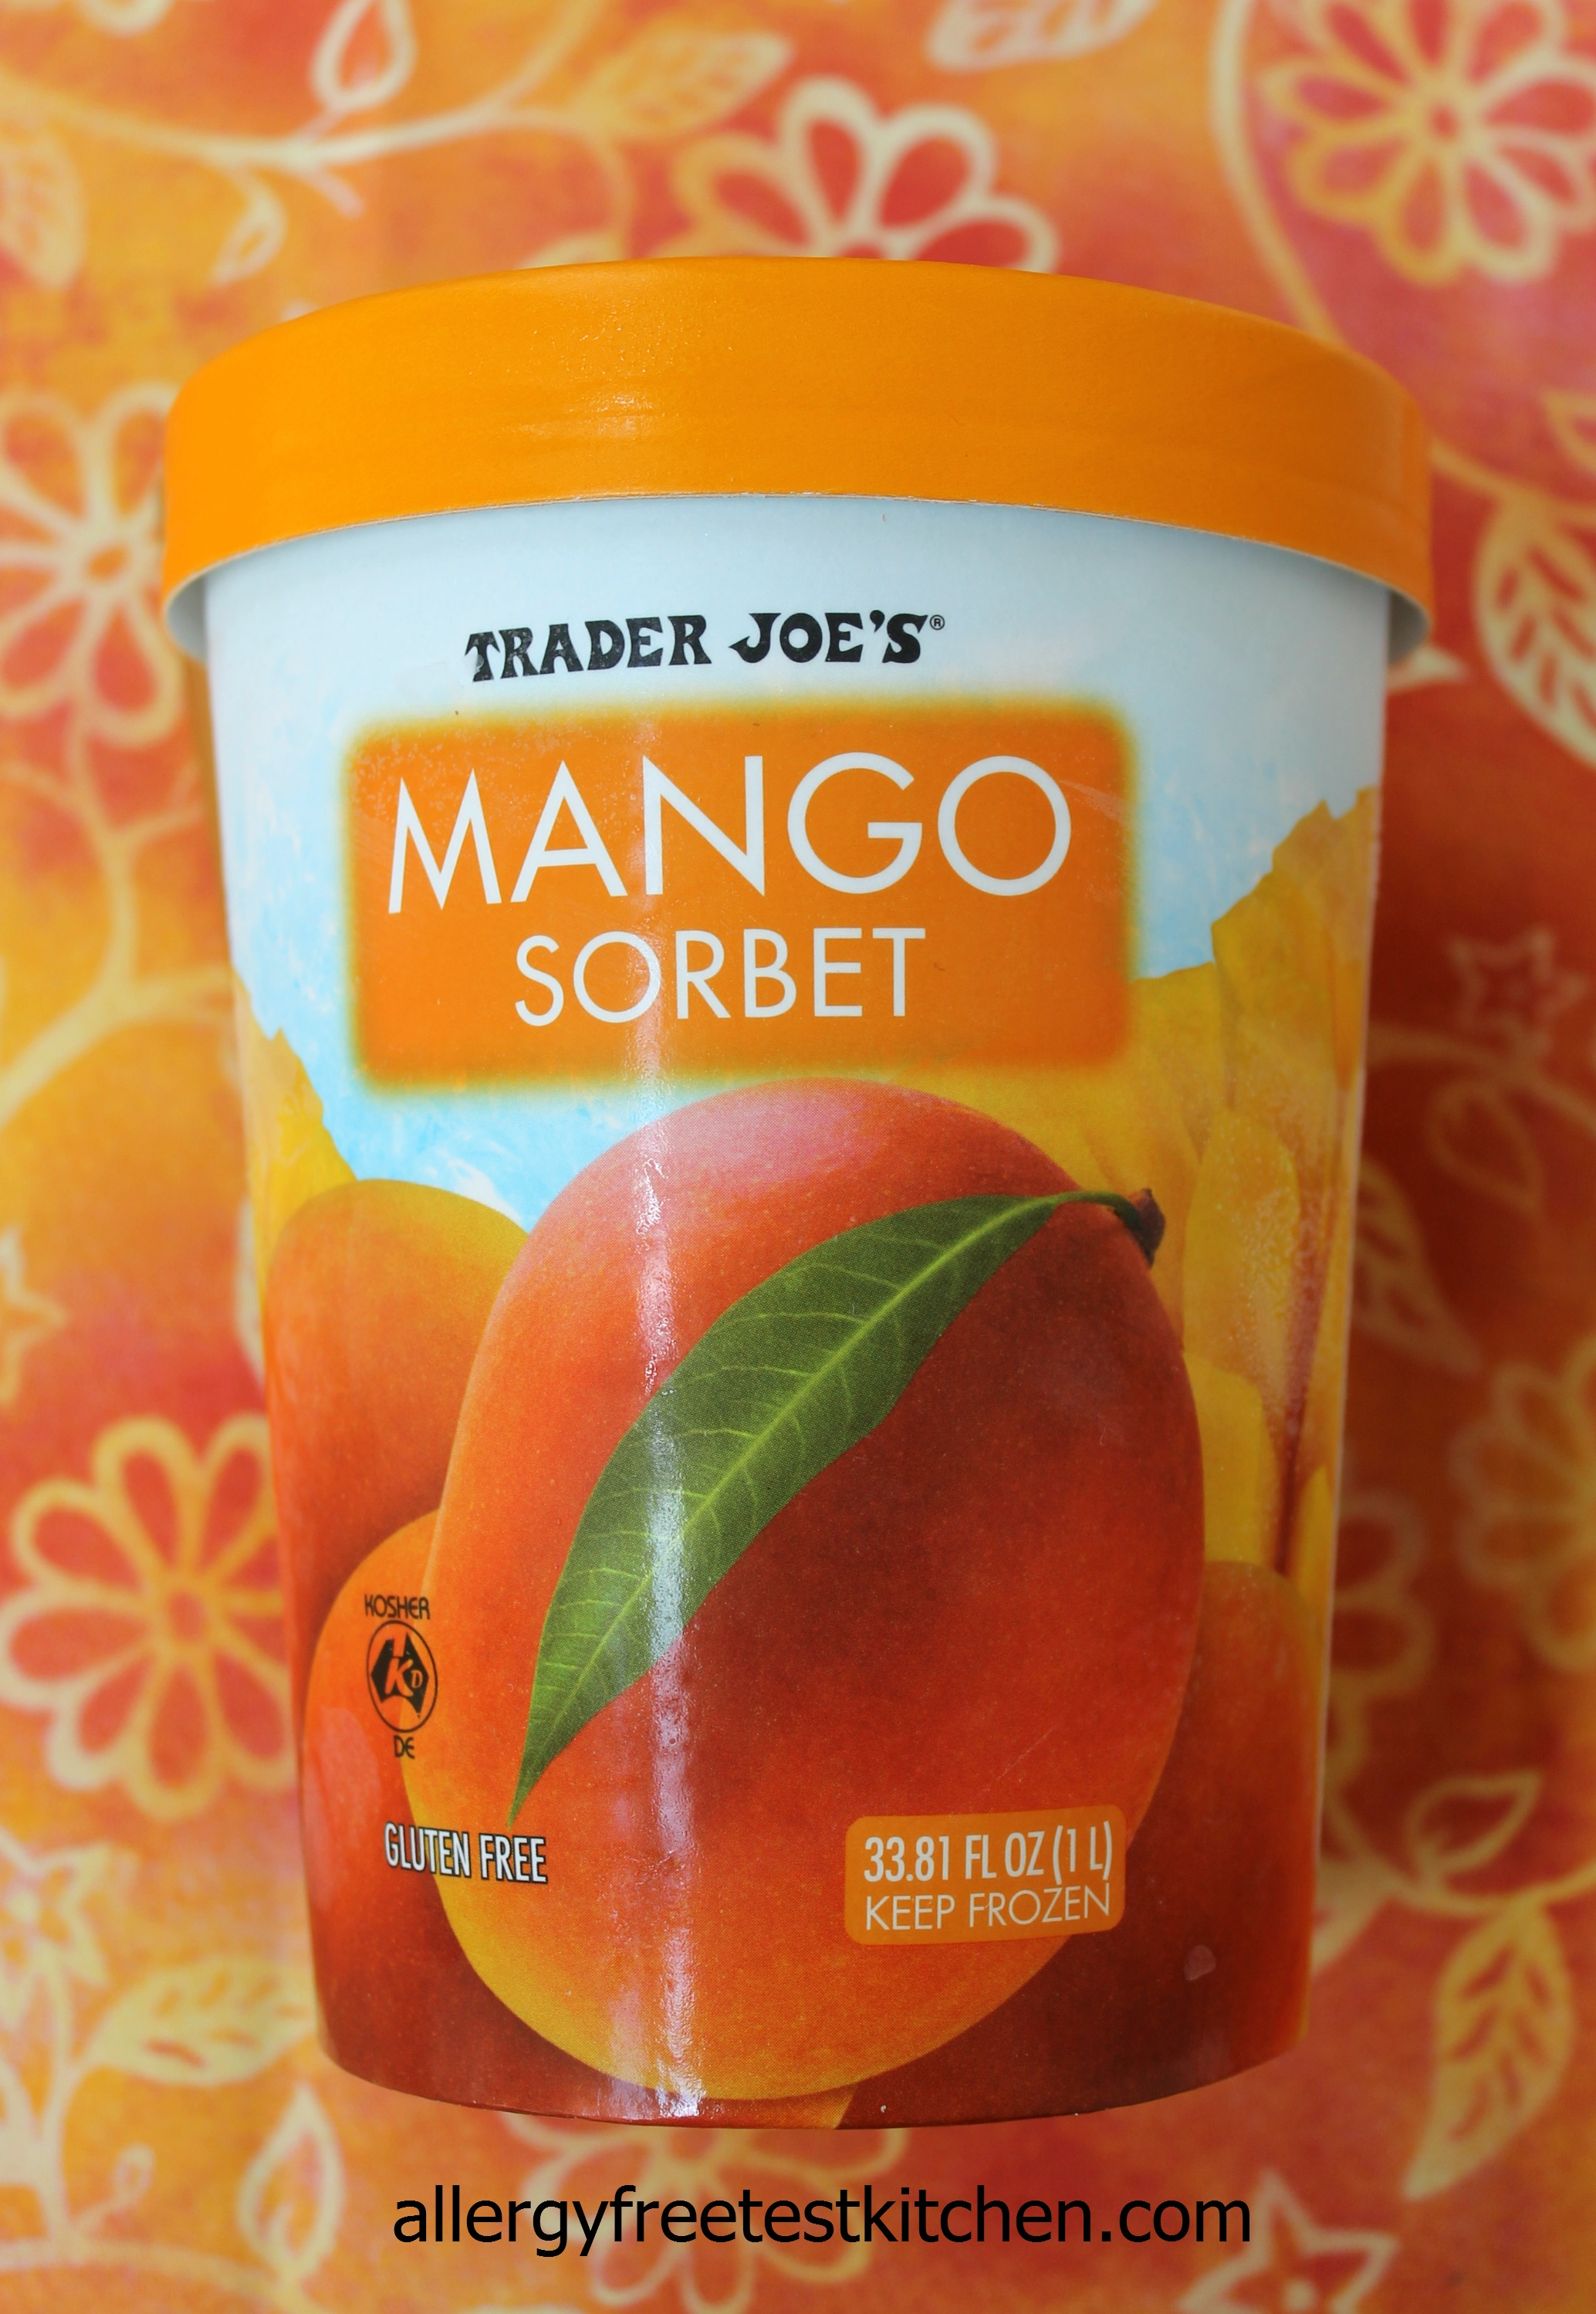 ... during my last trip to Trader Joe's and bought this Mango Sorbet